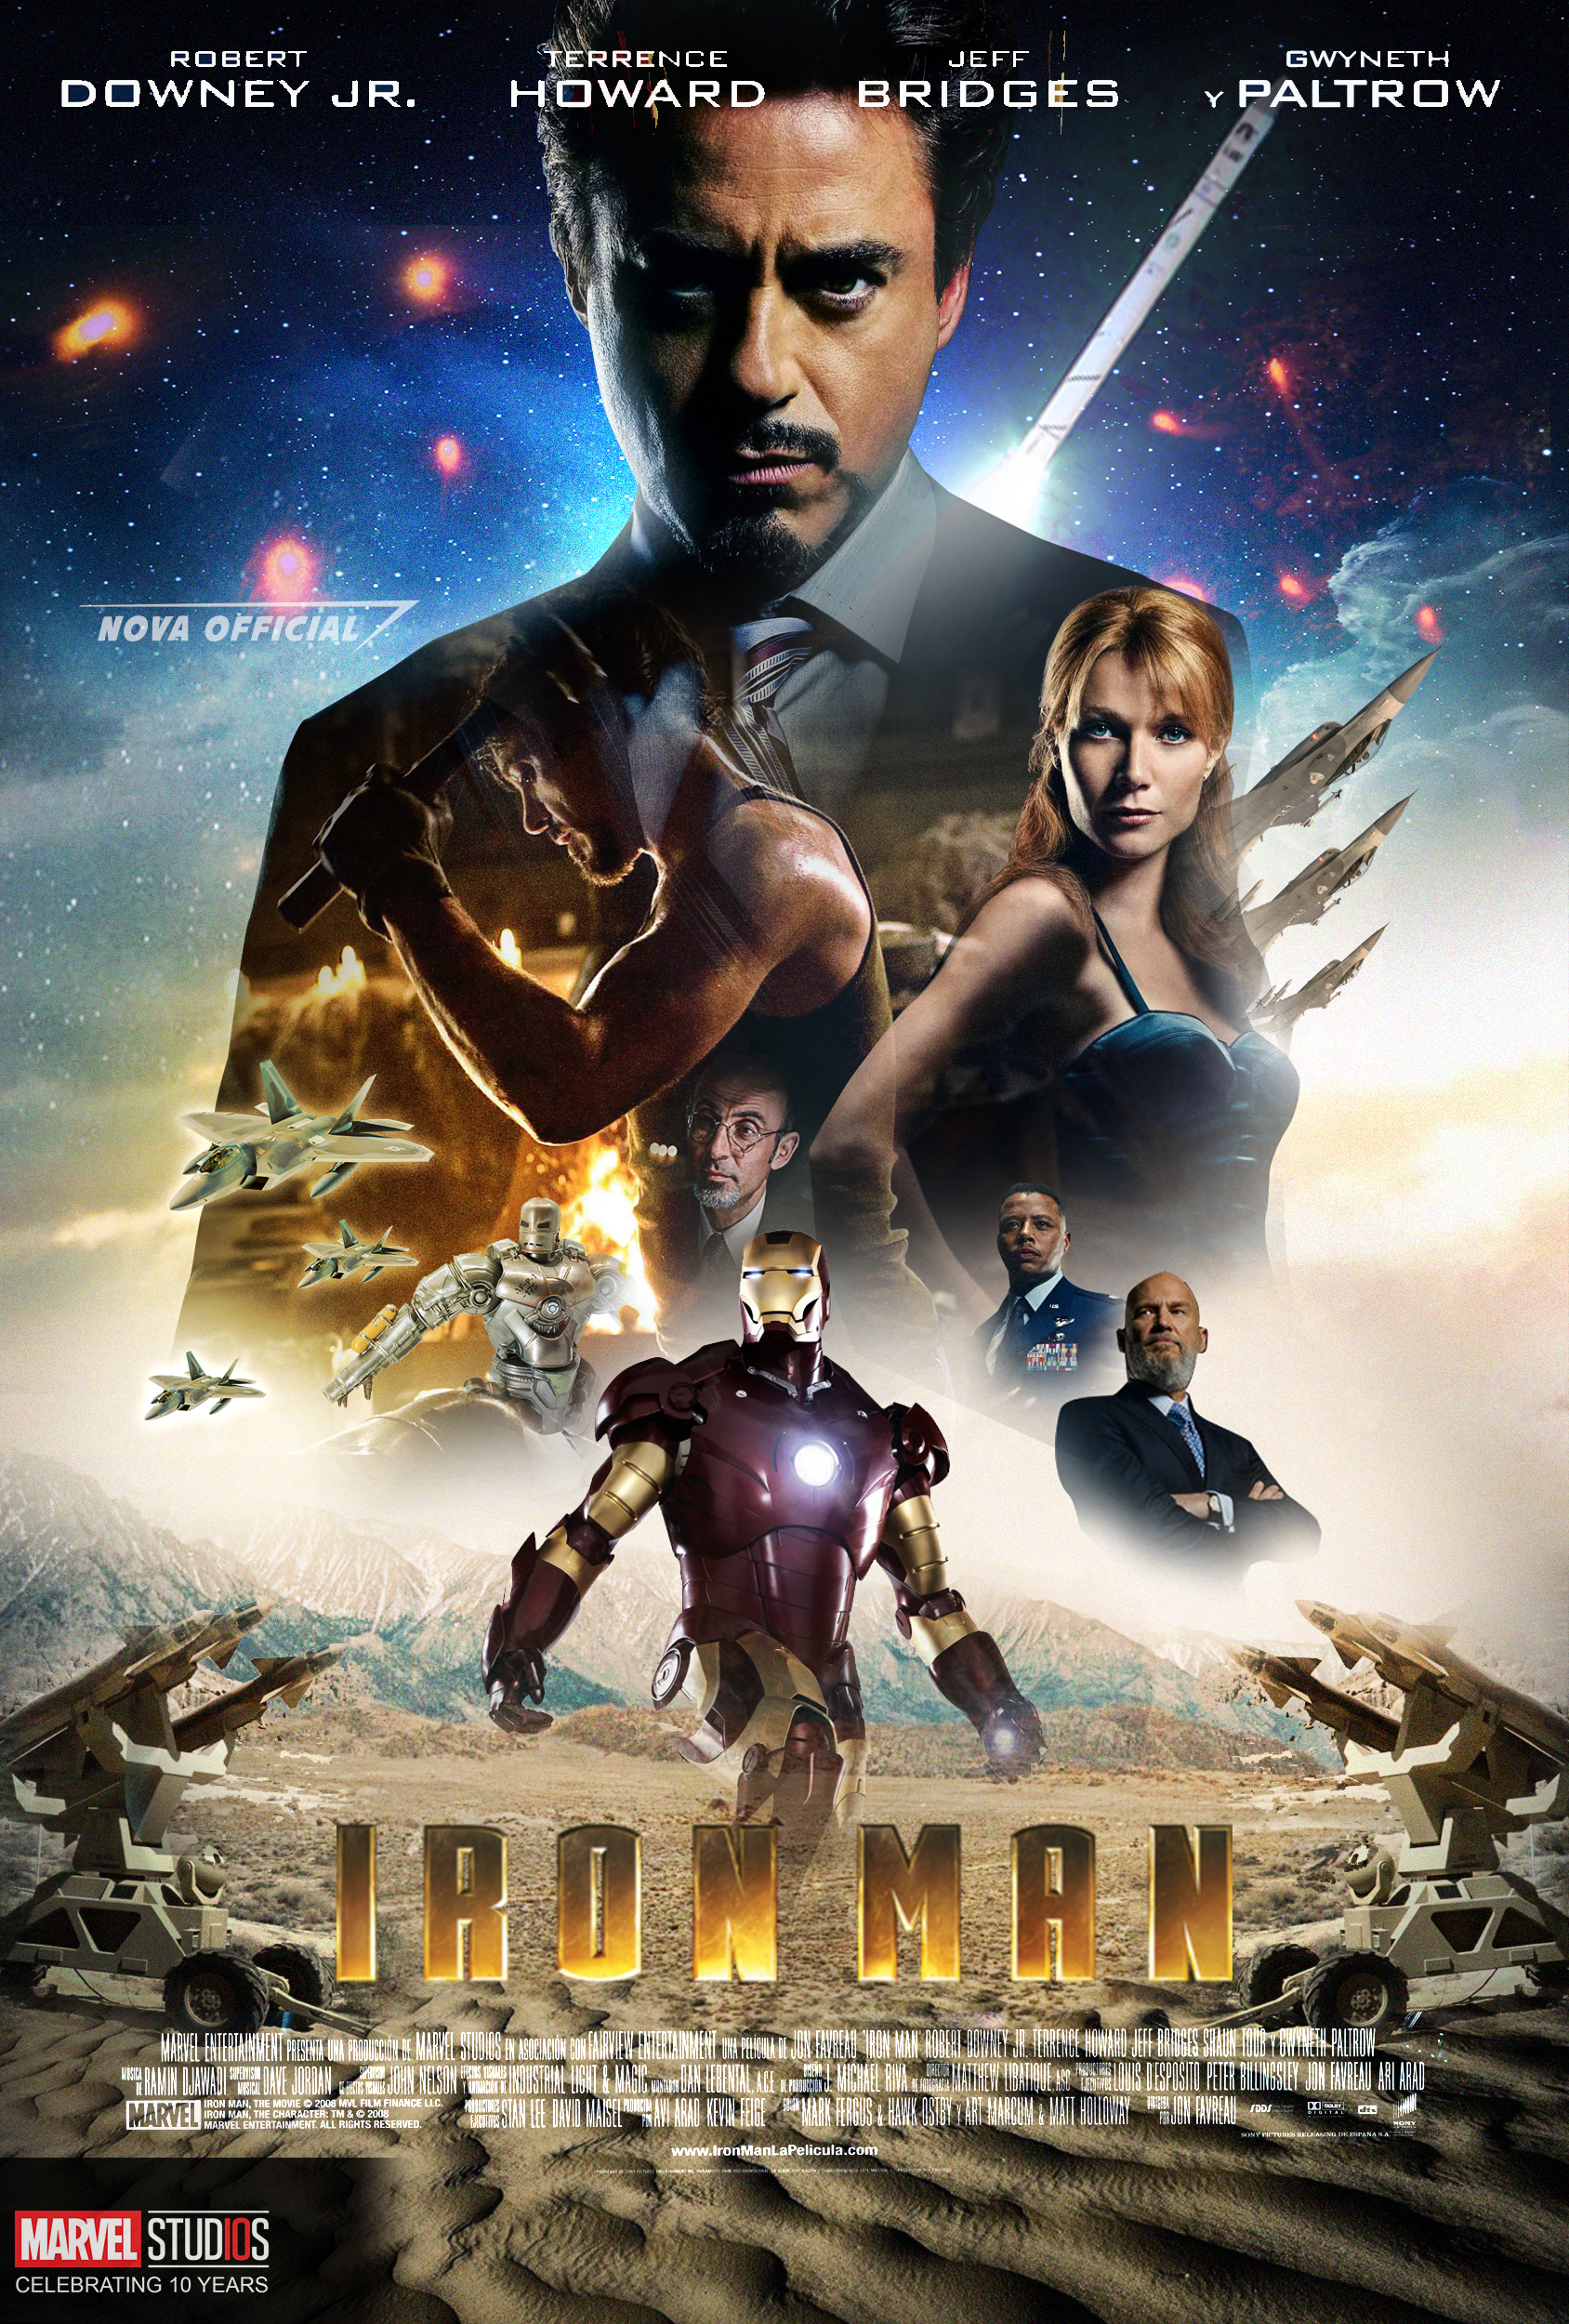 Iron Man 2008 Poster by iamtherealnova on DeviantArt